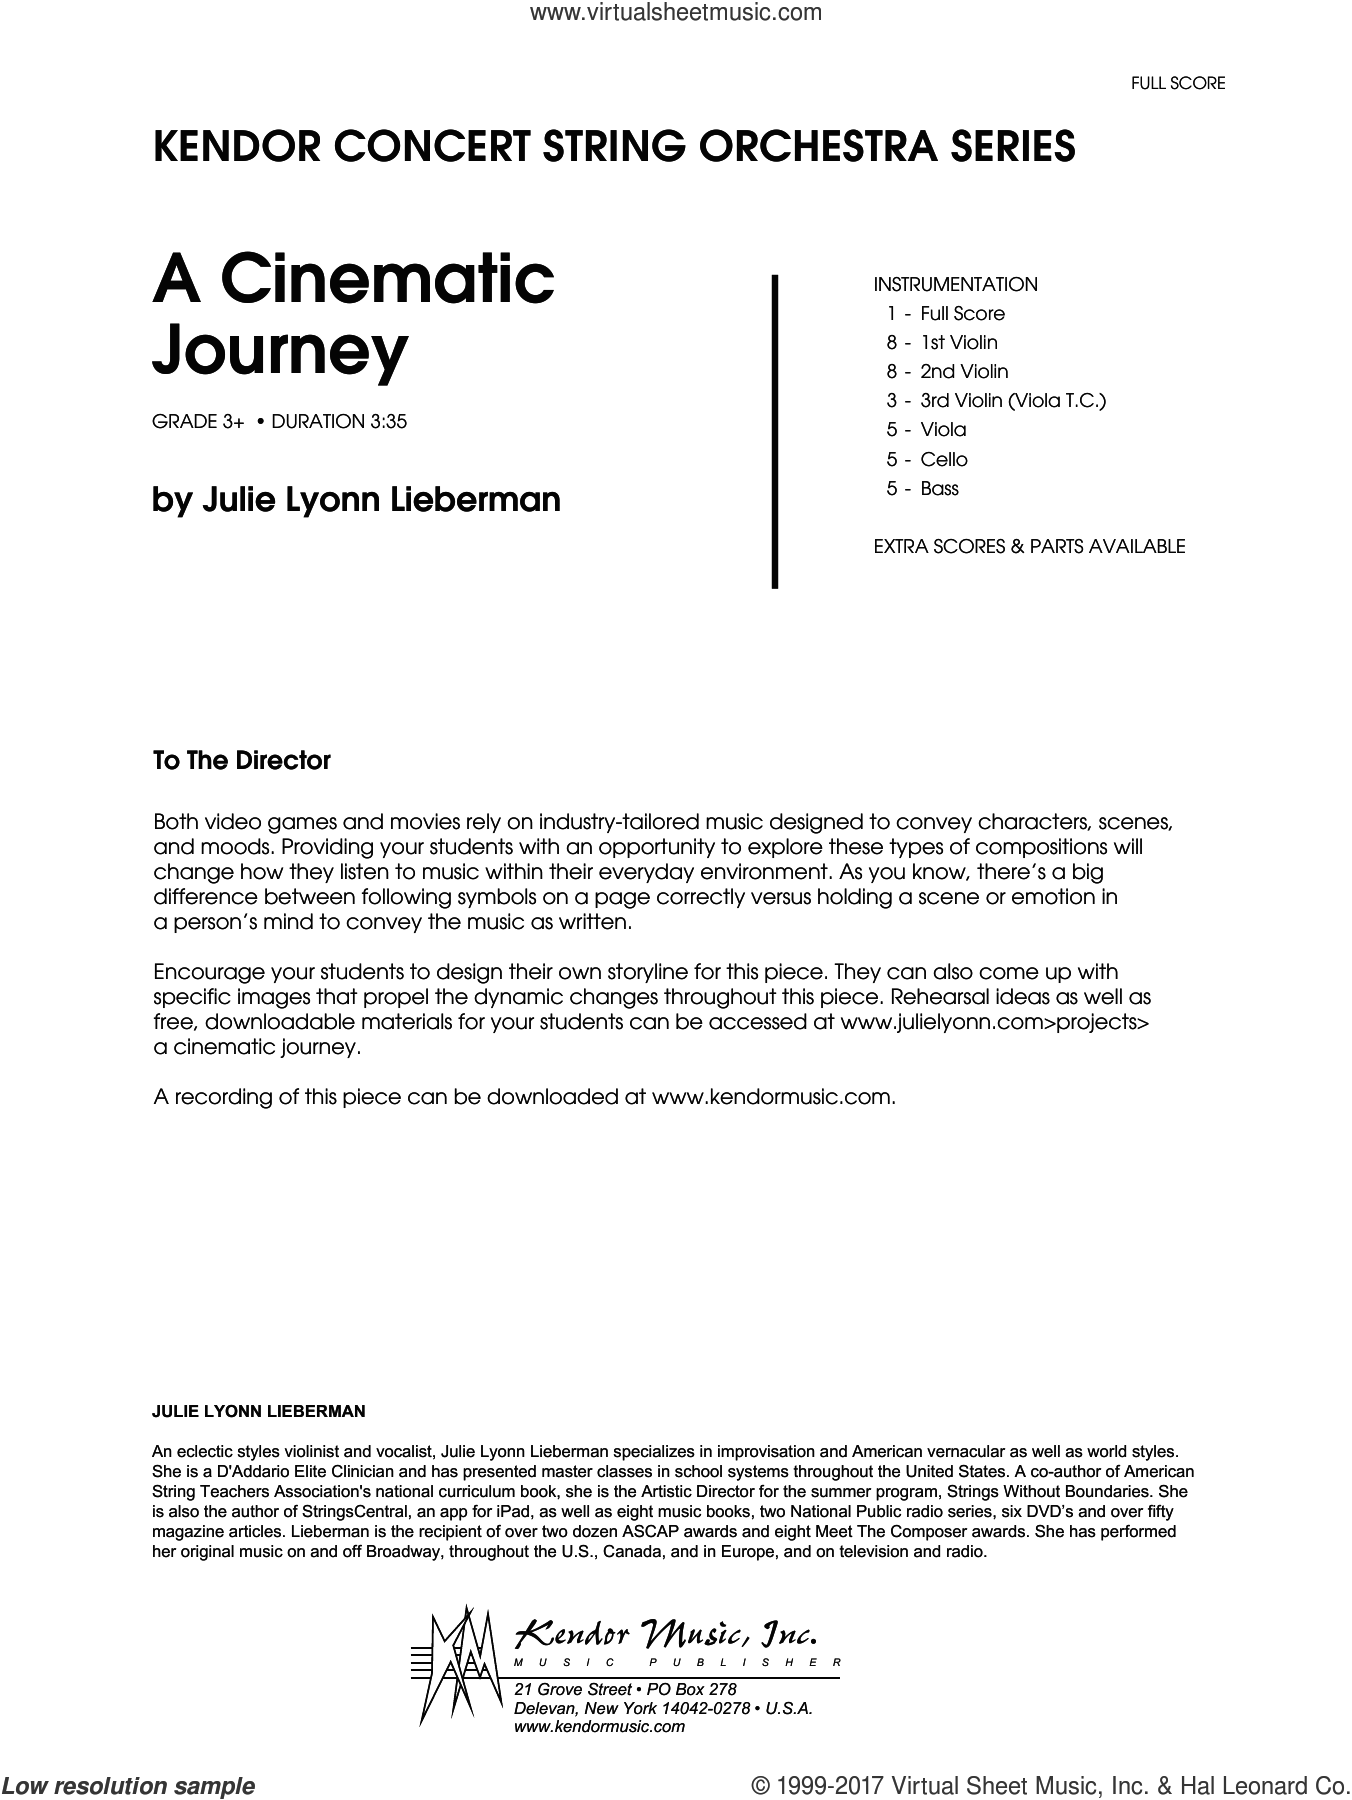 A Cinematic Journey (COMPLETE) sheet music for orchestra by Julie Lyonn Lieberman, intermediate. Score Image Preview.